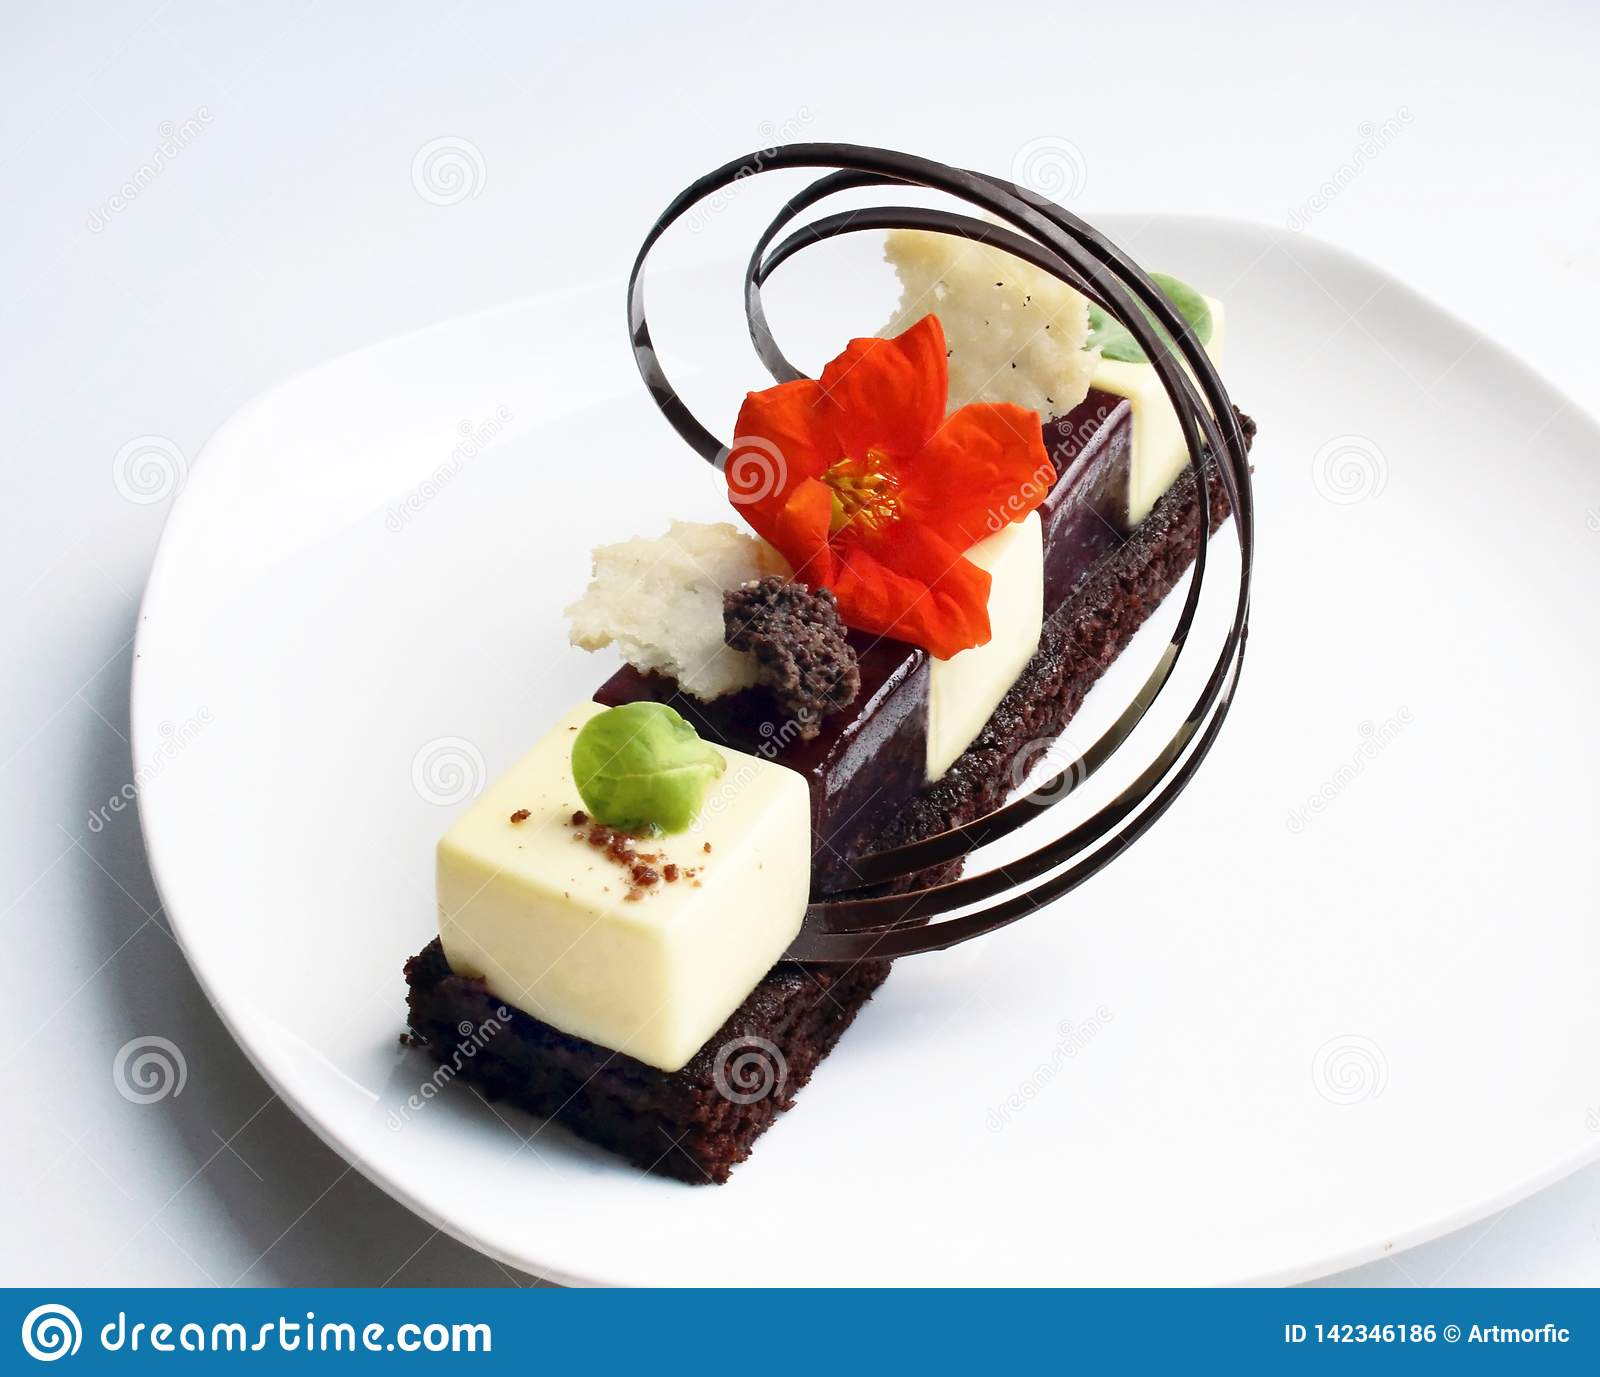 Individual dessert with edible flower and chocolate decoration on white plate